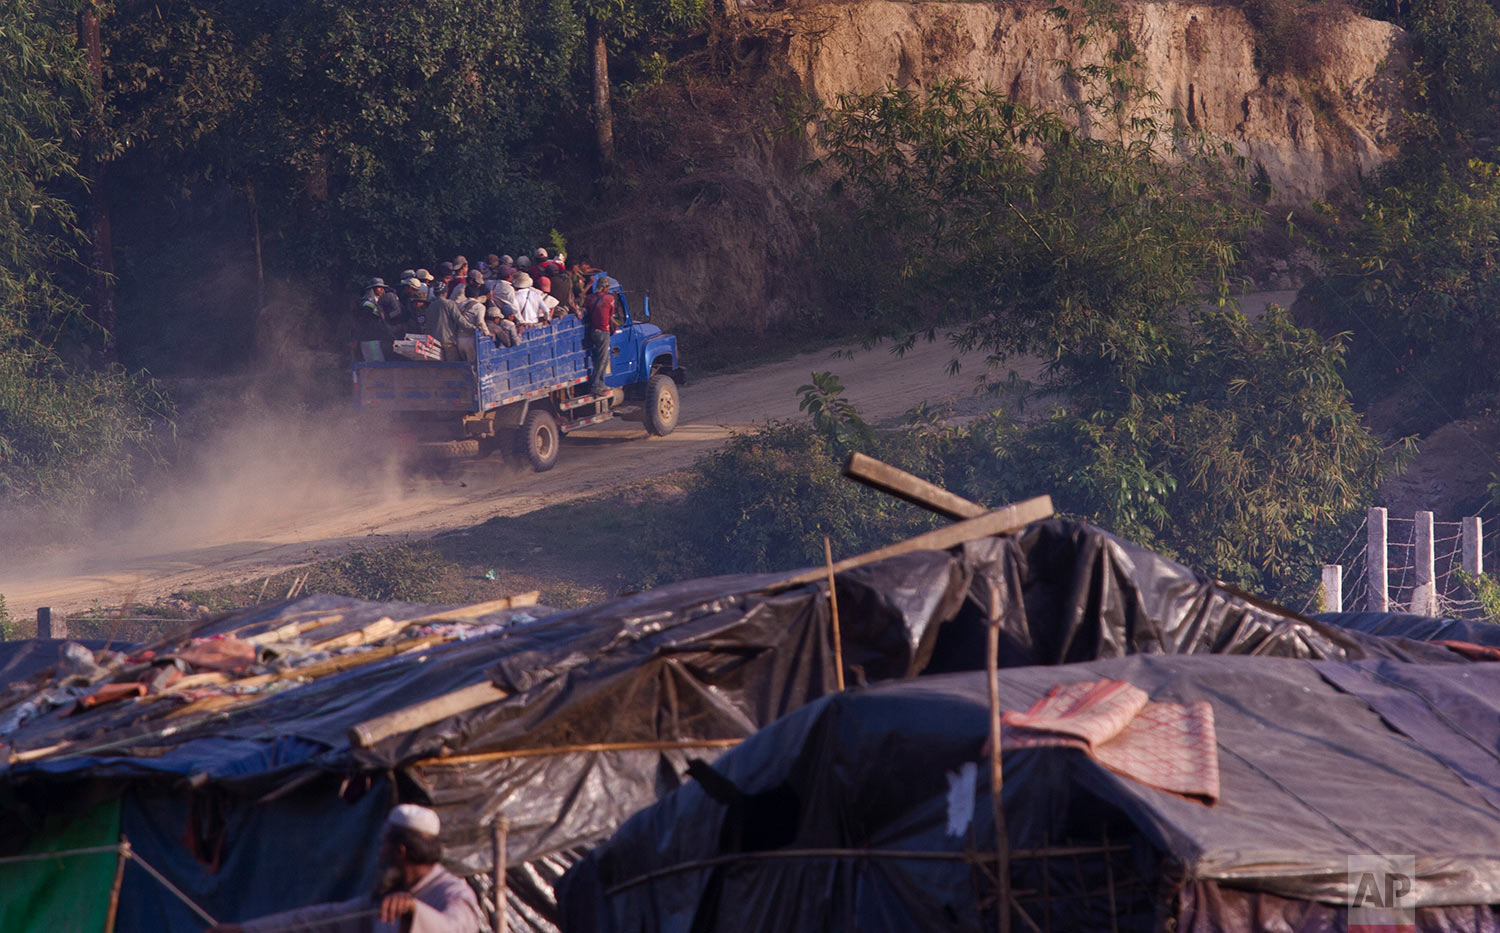 In this Tuesday, Jan. 23, 2018, photo, a Myanmar truck is seen carrying road construction workers huddled in its back, drives past Rohingya make shift shelters on the Bangladesh side at the Myanmar Bangladesh border at Tumru, near Cox's Bazar. Myanmar says it's ready for a gradual repatriation of Muslim Rohingya refugees chased out by the Buddhist-majority country's military. (AP Photo/Manish Swarup)   See these photos on AP Images